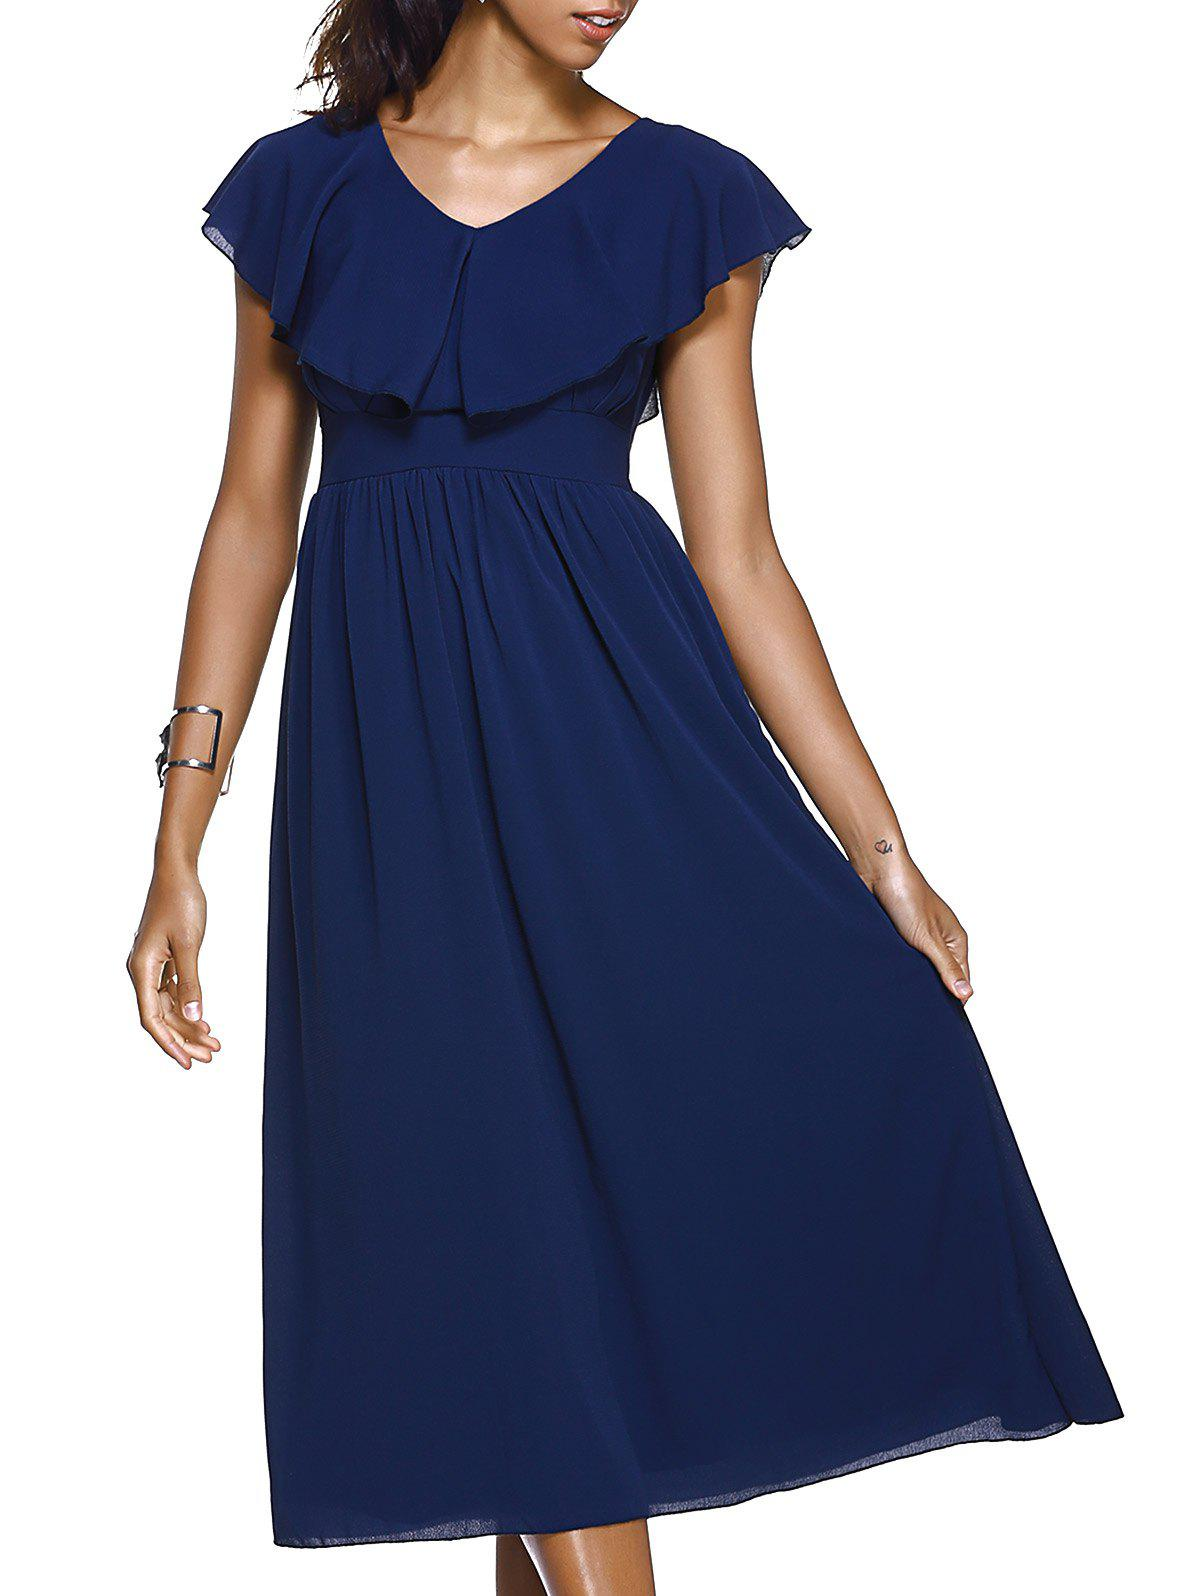 Stylish Women's V-Neck Short Sleeve Ruffled Maxi Dress